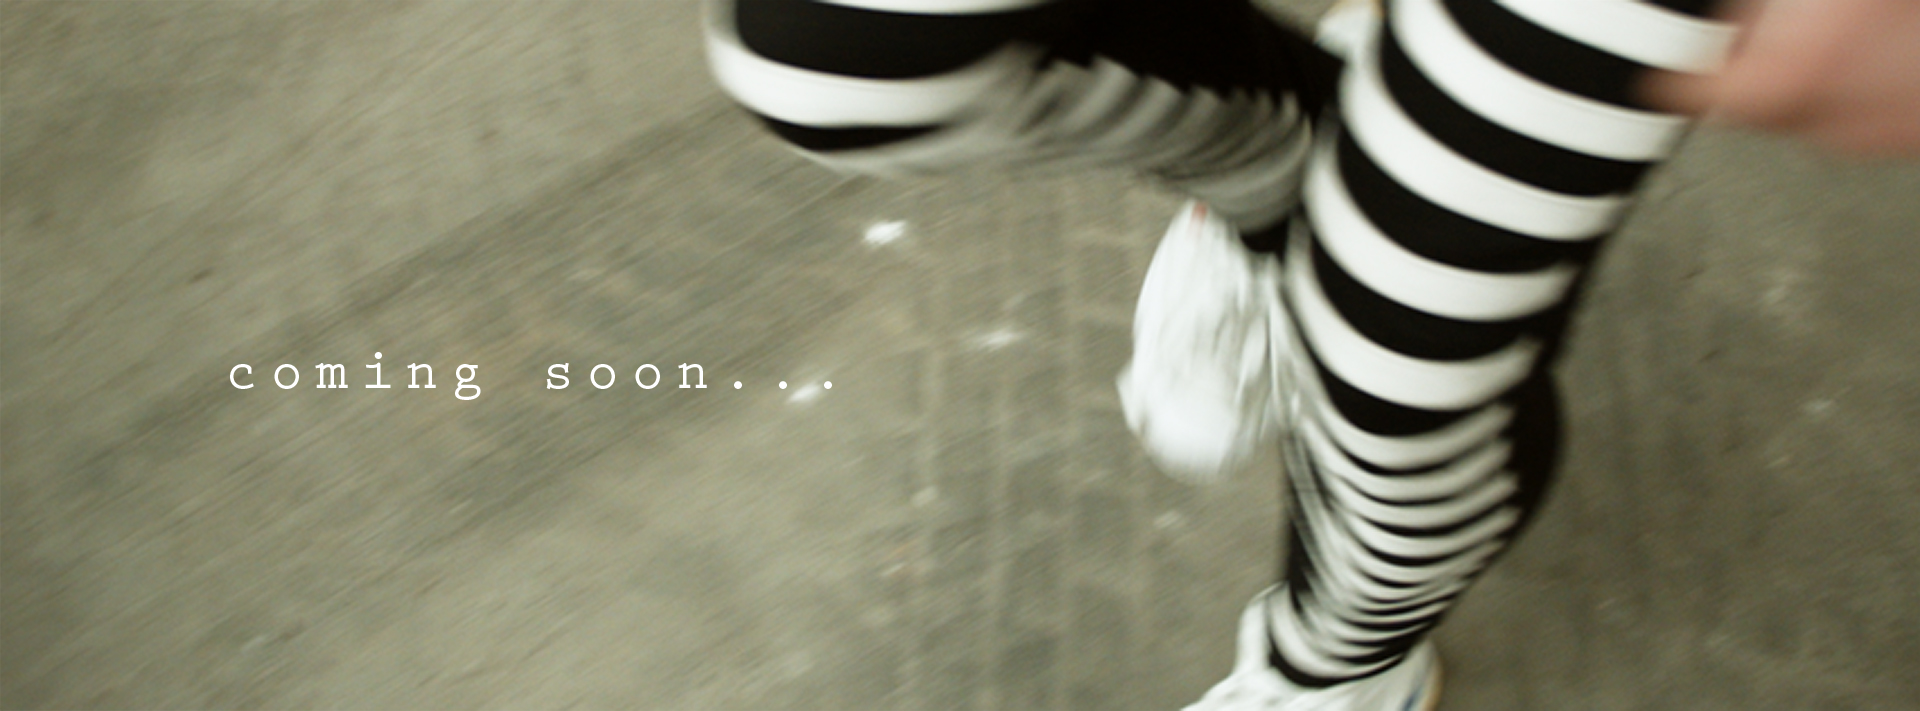 RunBoy_comingSoon_1920_centered